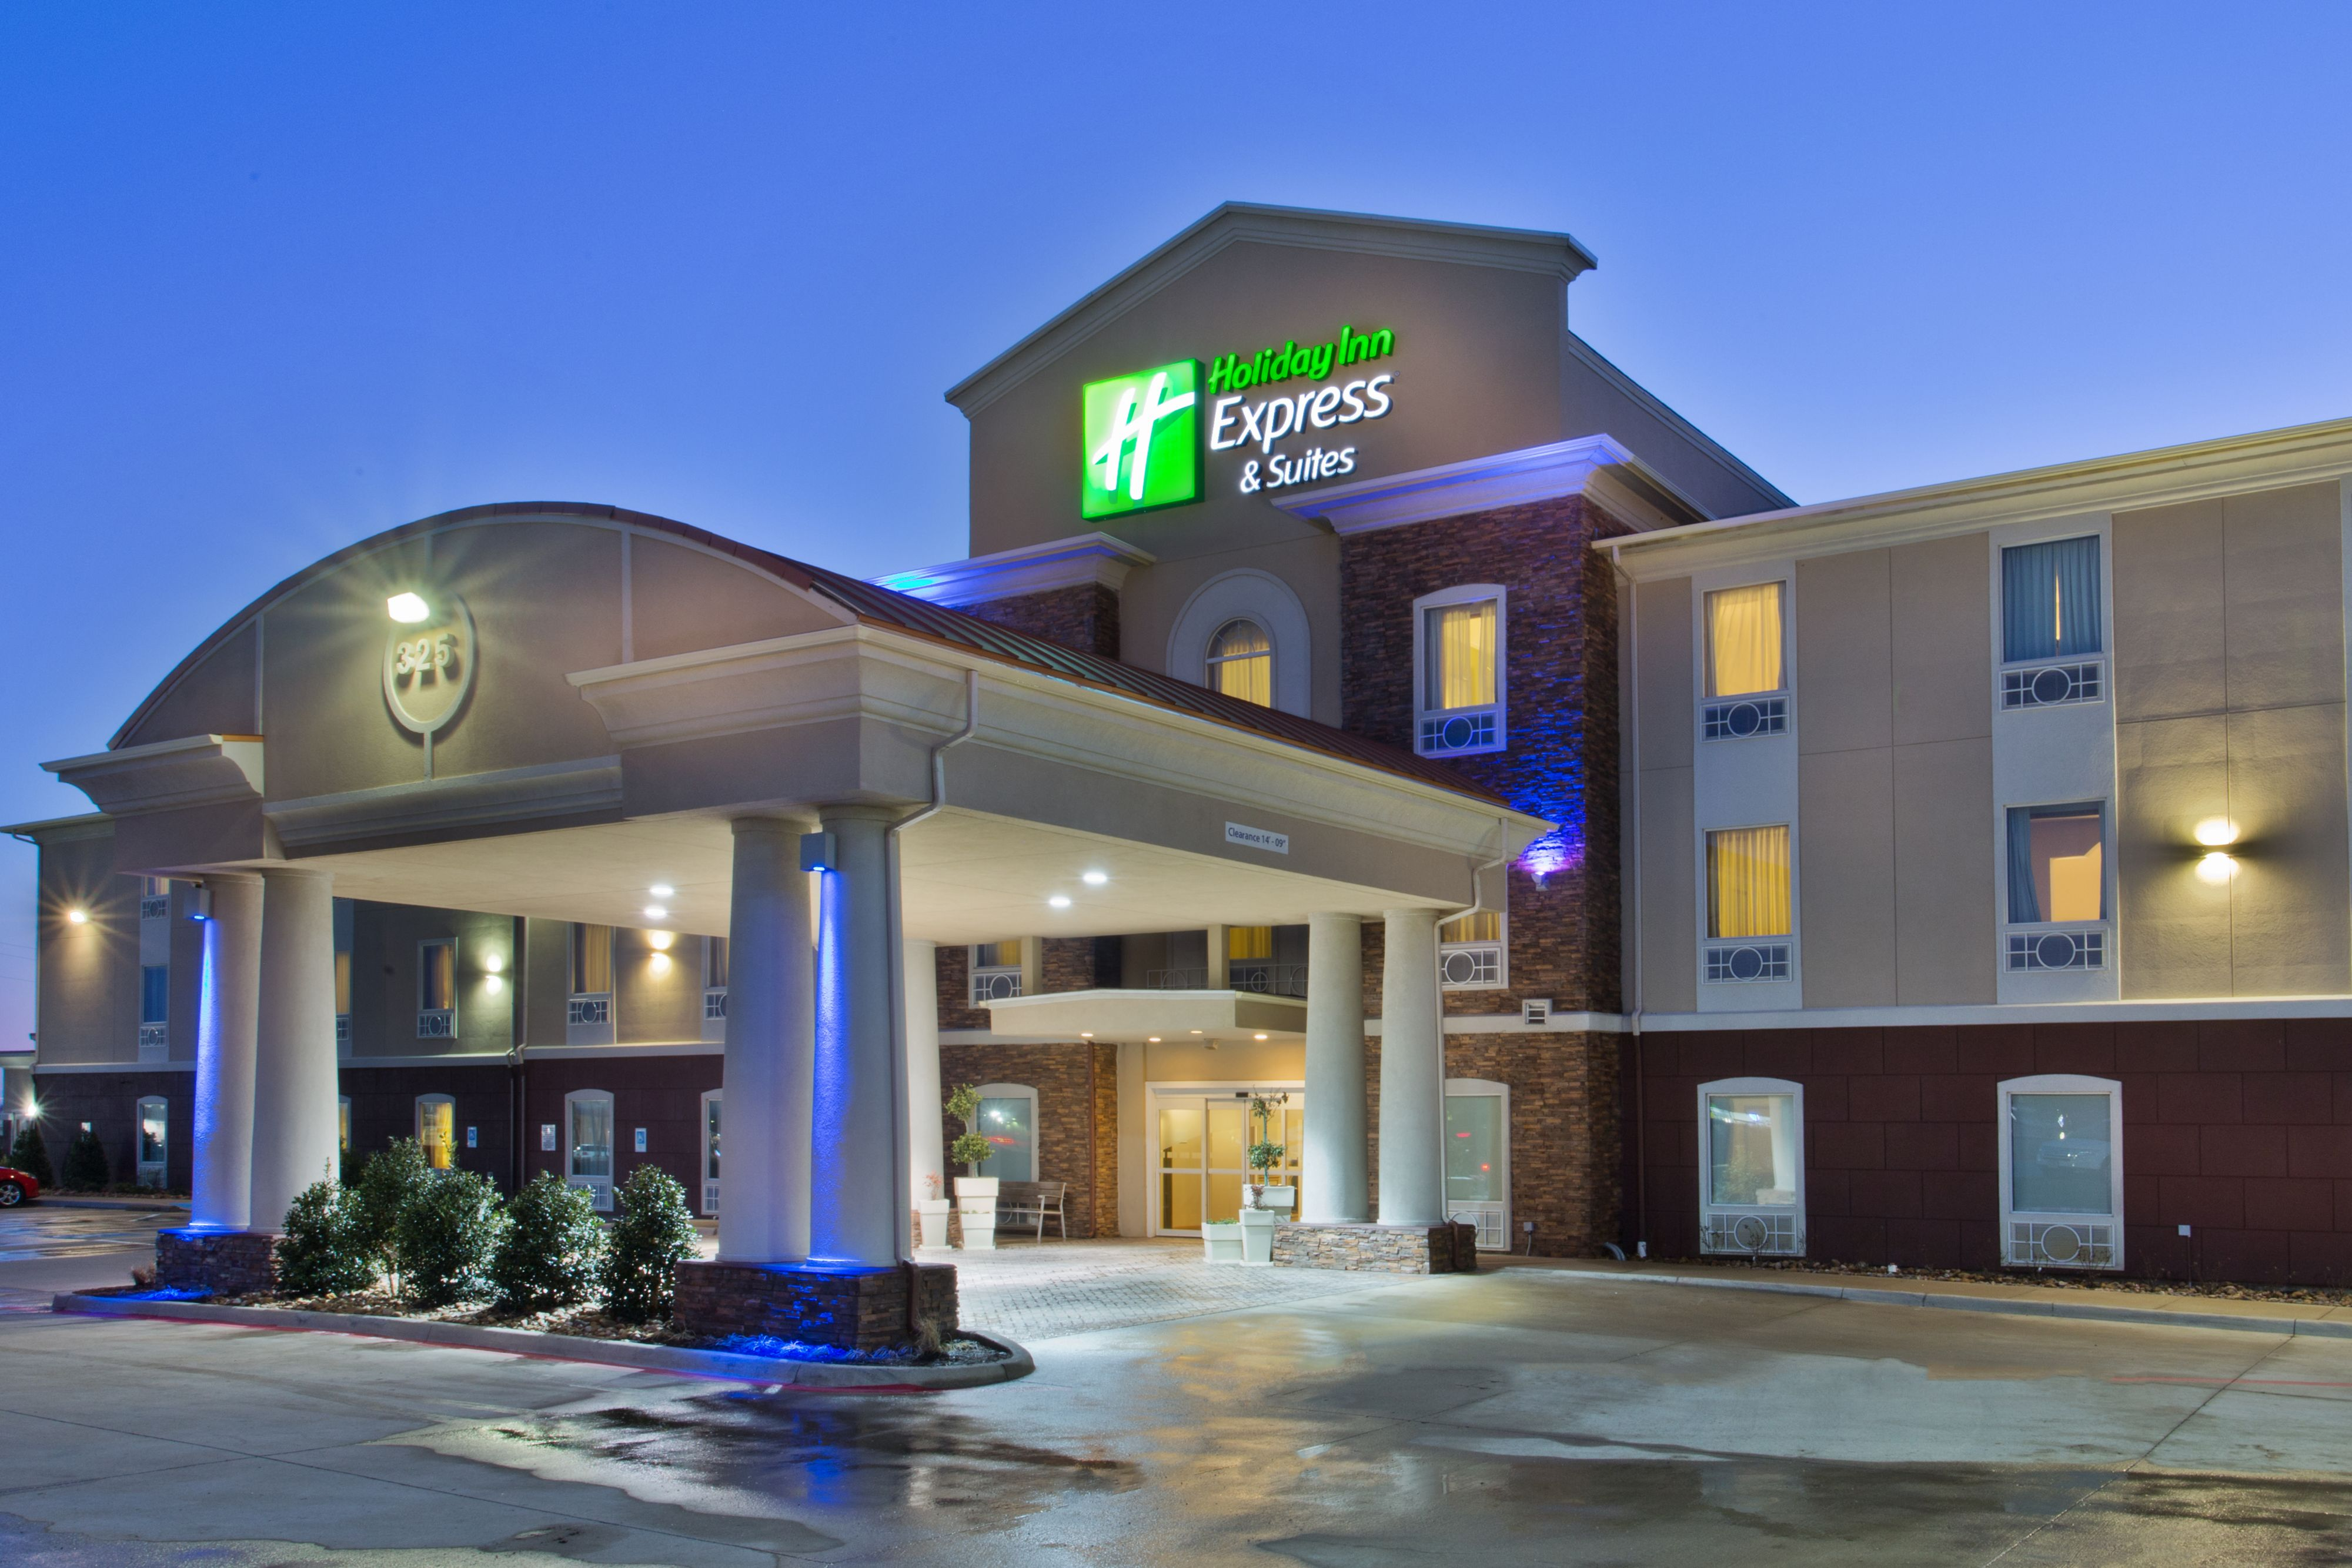 Americas Best Value Inn Altus 1501 East Broadway 580 482 4656